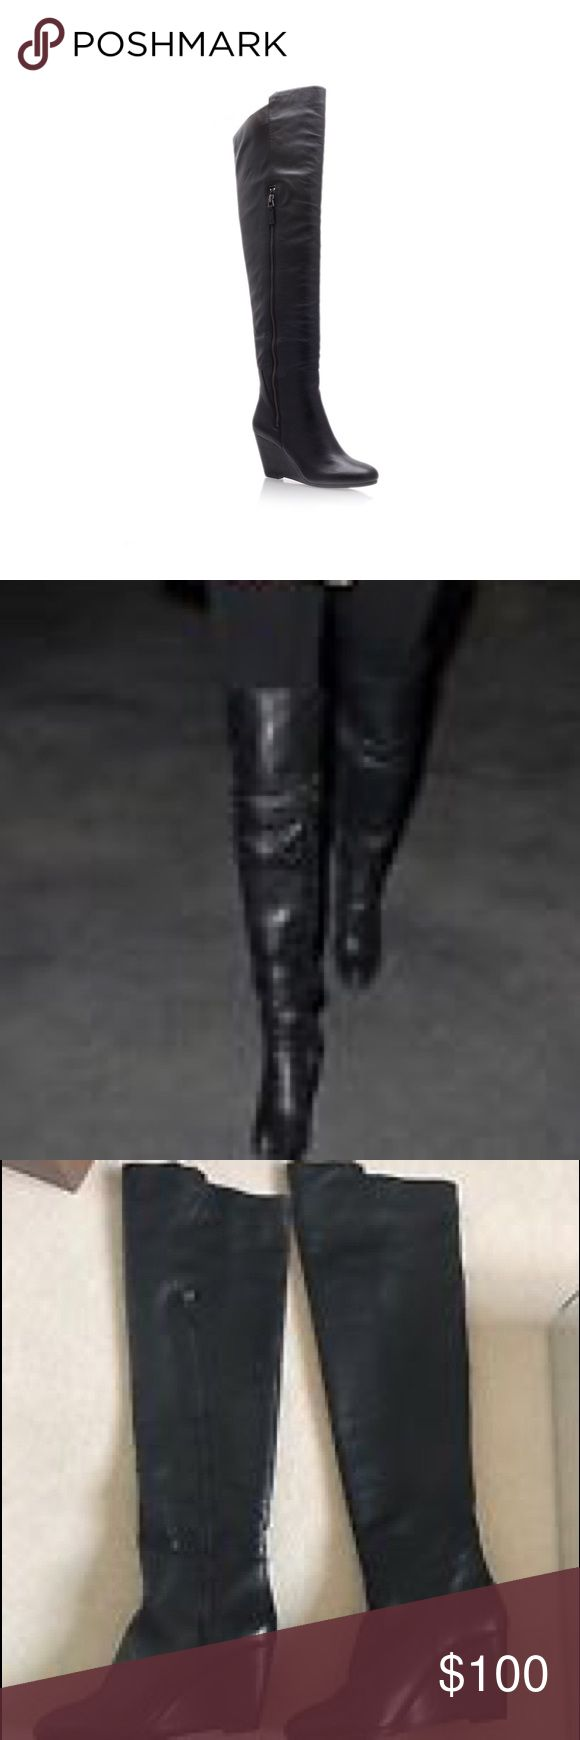 Kurt Geiger leather wedge over the knee boots These are amazing! Pics don't do them justice. They are beautiful buttery soft leather, nice rounded toe, small wedge, and they go up over the knee. I wish these were bigger but I can't fit into them after having a baby 😩. My loss is your gain on these. They are fab!!!! Sz. 8 kurt geiger Shoes Over the Knee Boots